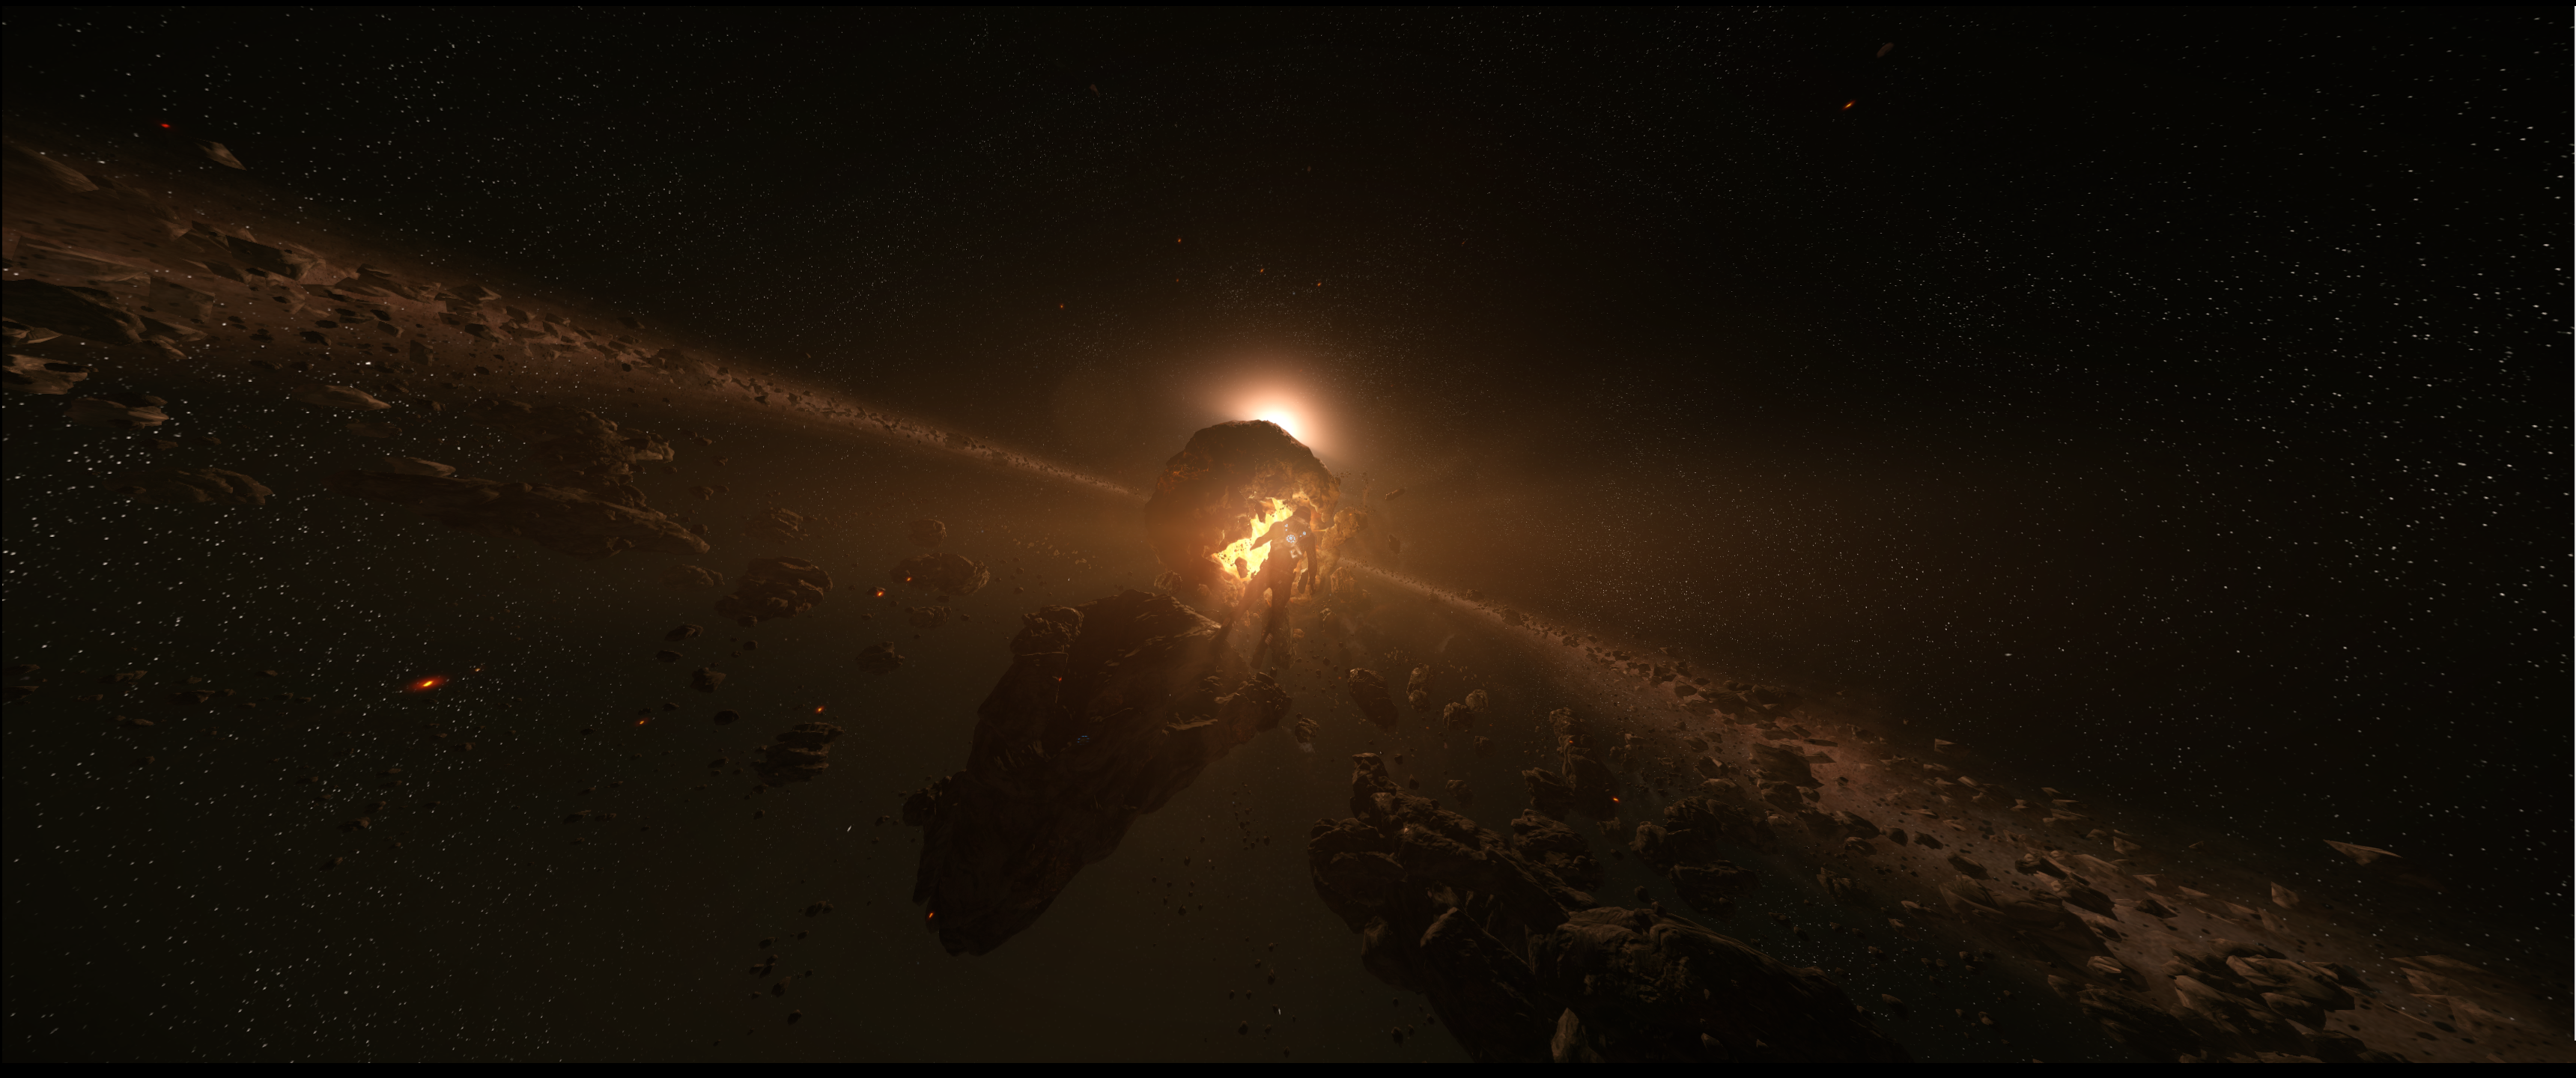 STAR CITIZEN NS VAMOS AT AS ESTRELAS 3440x1440